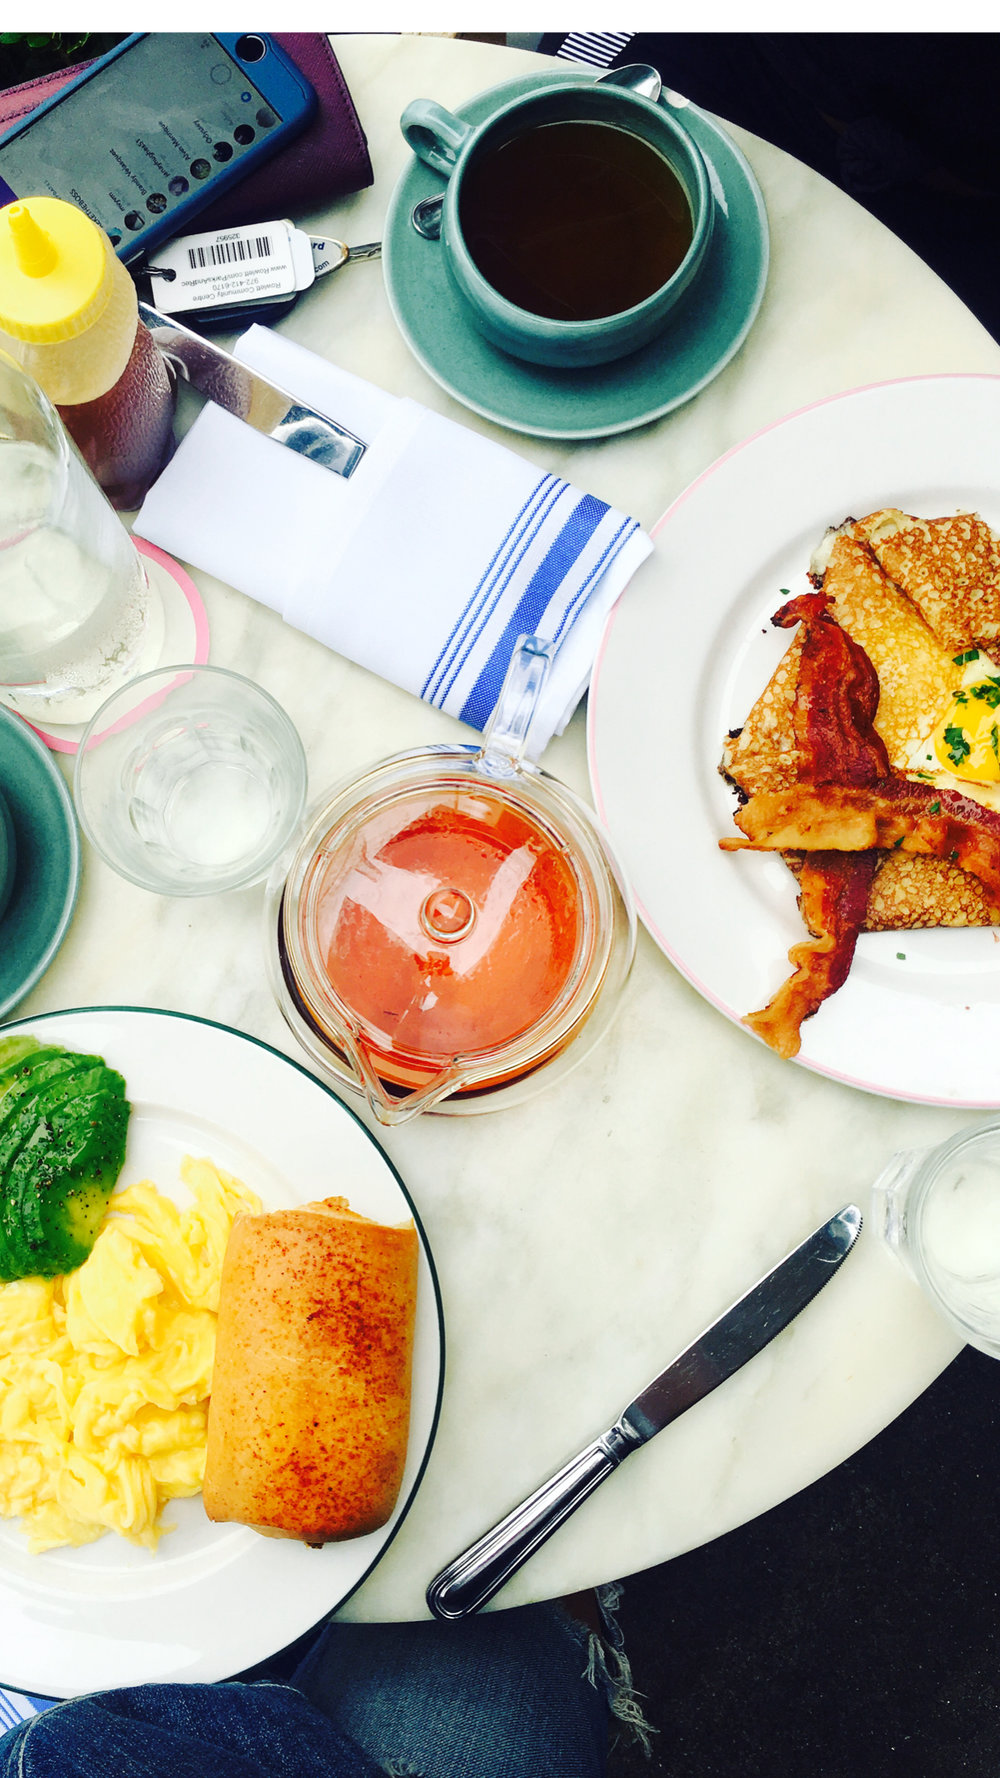 June's All Day Cafe Never Disappoints - From homemade pastries to the freshest farm eggs. June's always gets it right.